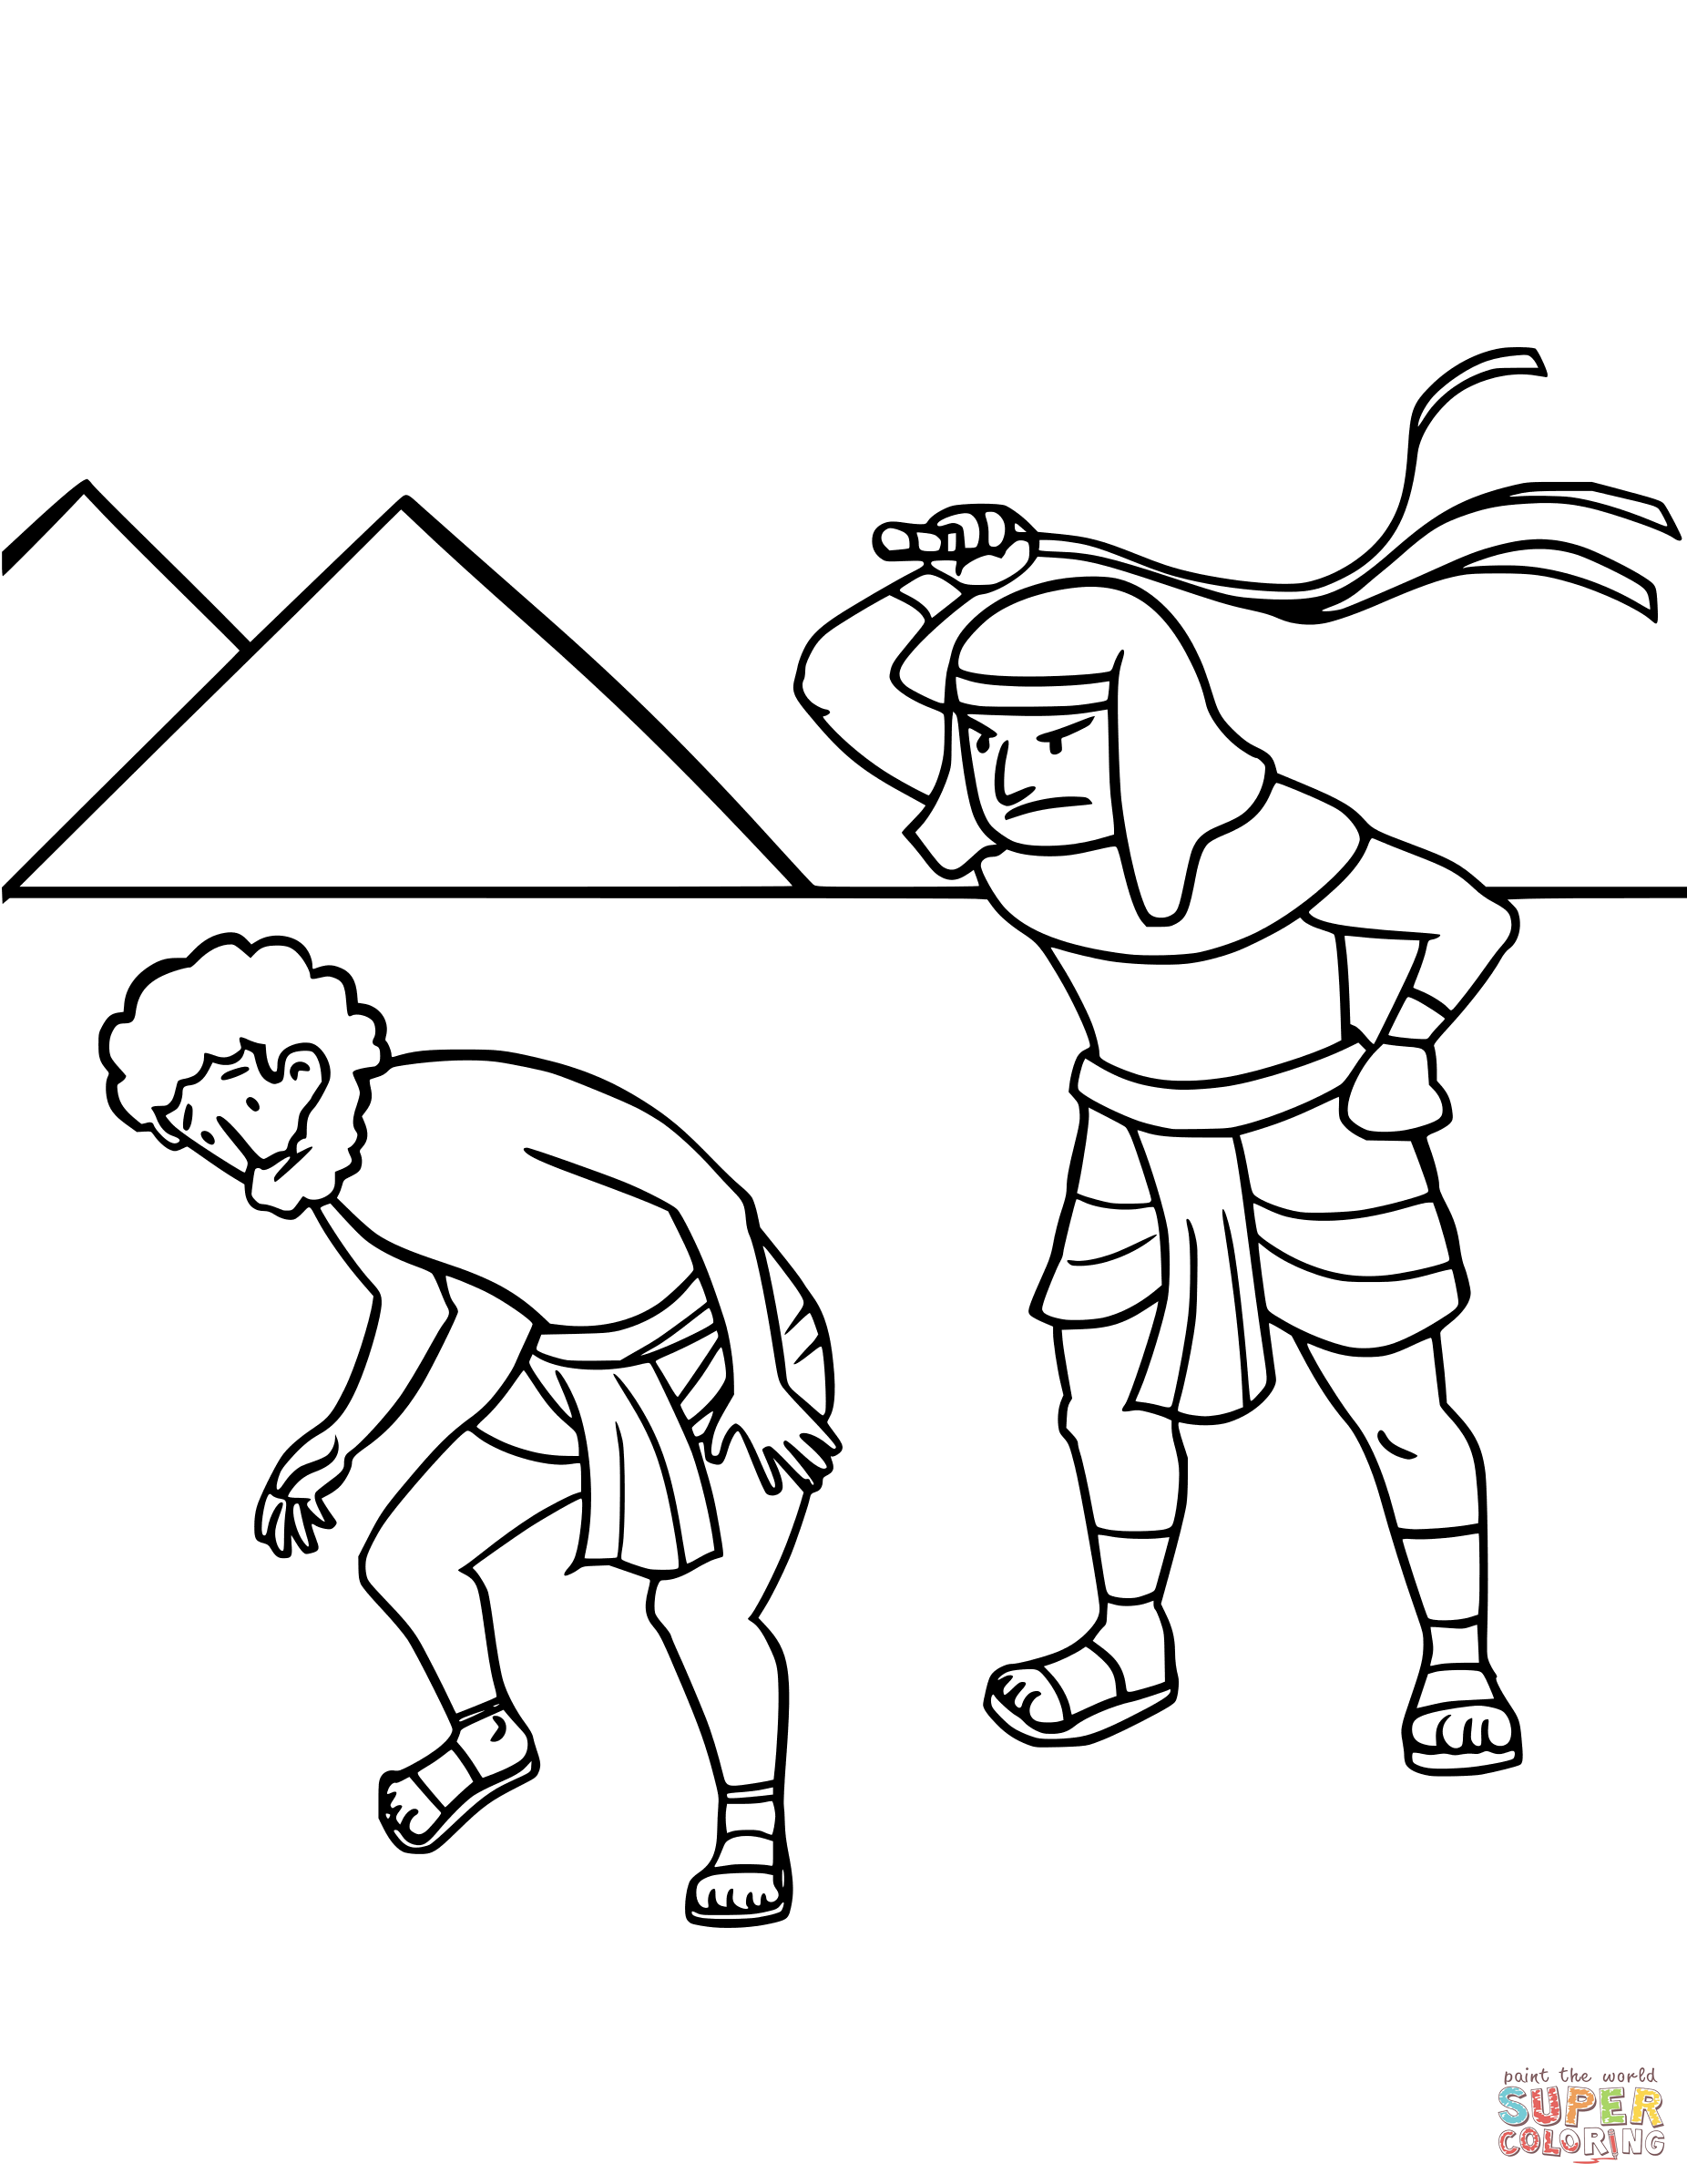 Israel S Enslavement In Egypt Coloring Page Free Printable Coloring Pages Bible Coloring Pages Flag Coloring Pages Free Printable Coloring Pages